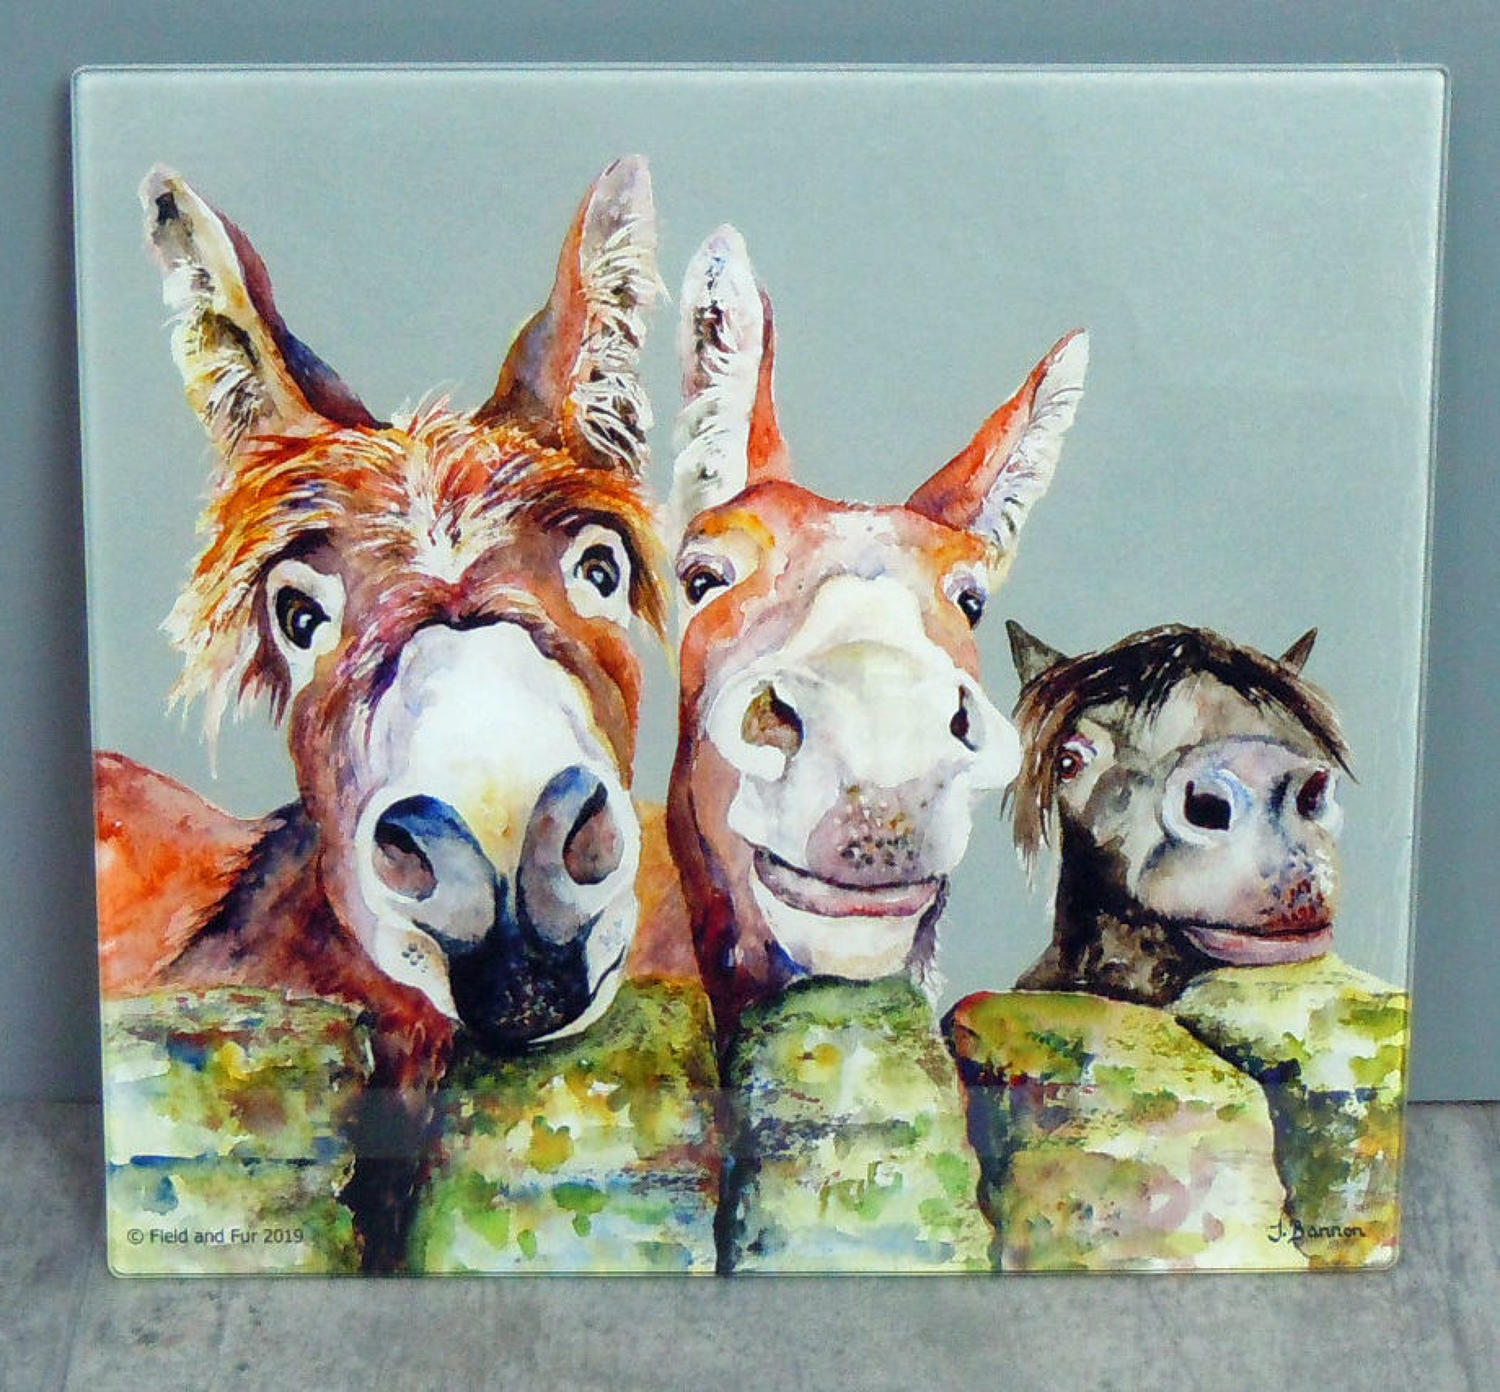 Glass Donkey chopping board, worktop saver